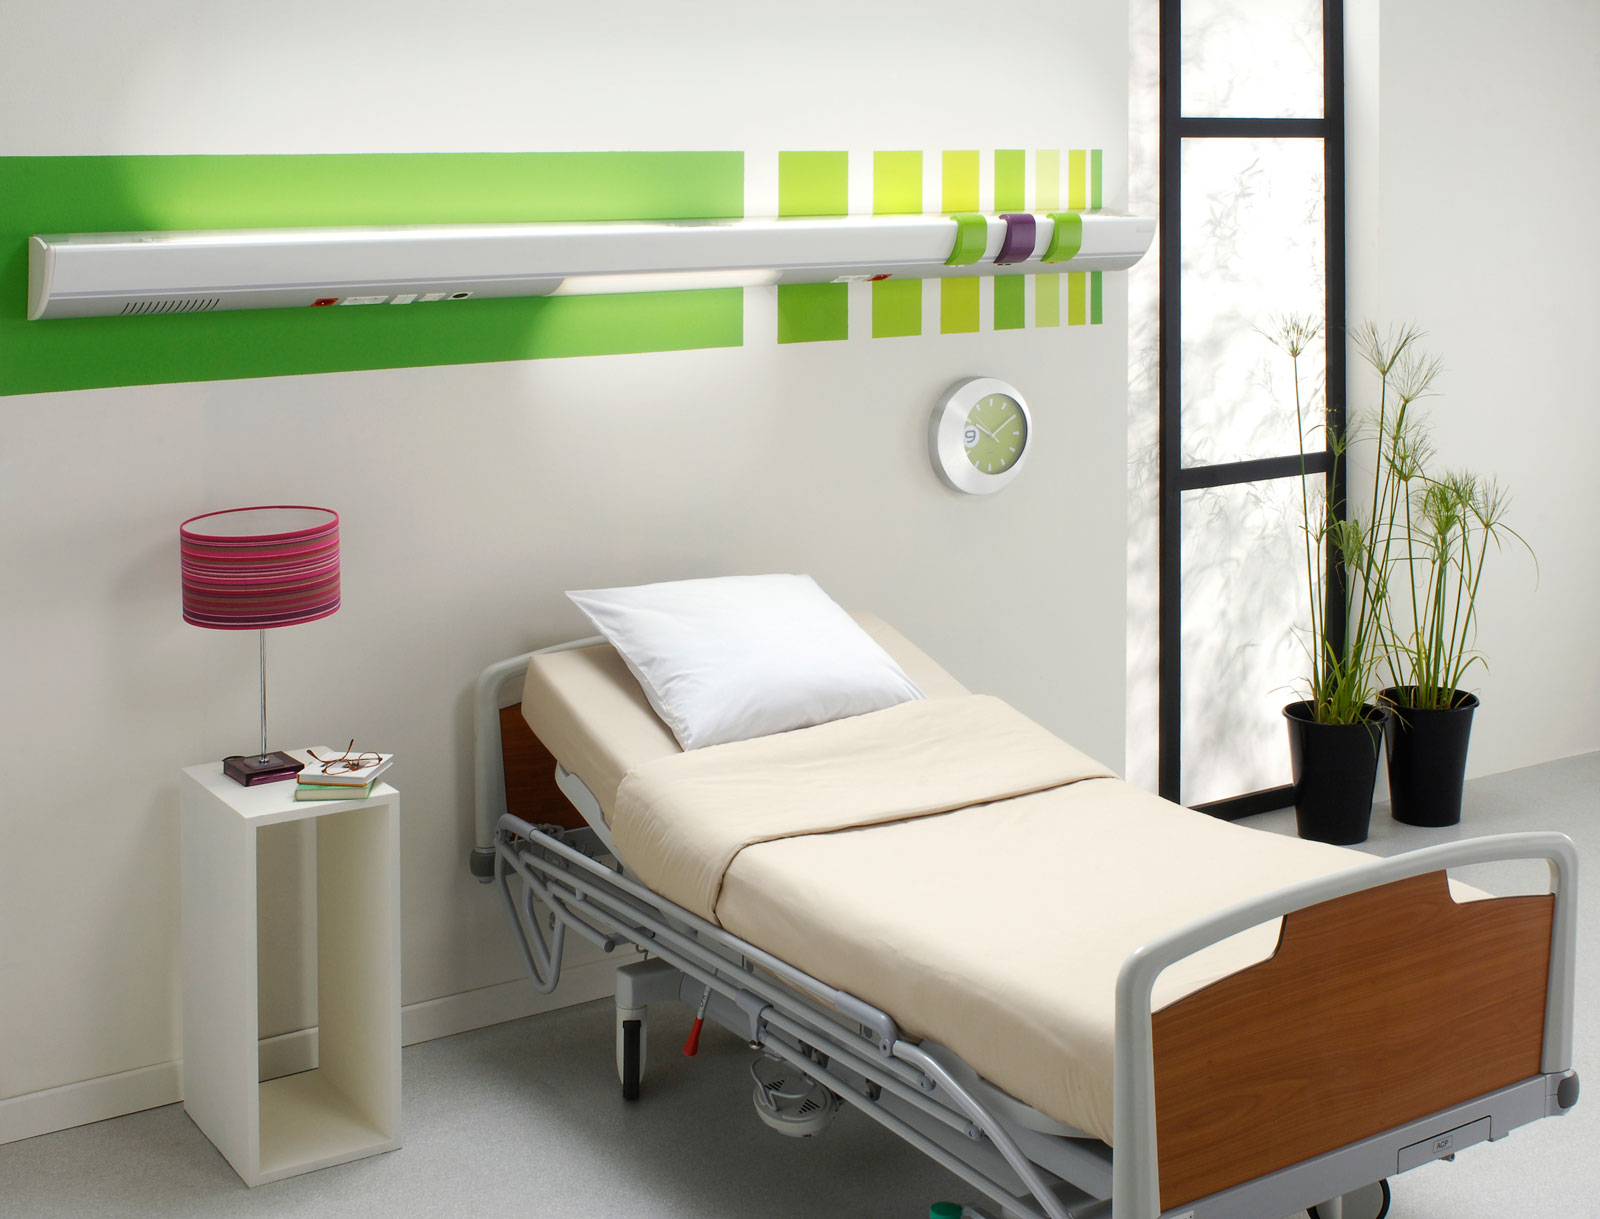 Aron Hospital Bed Vico Hospital Bed Aron Hospital Bed ...